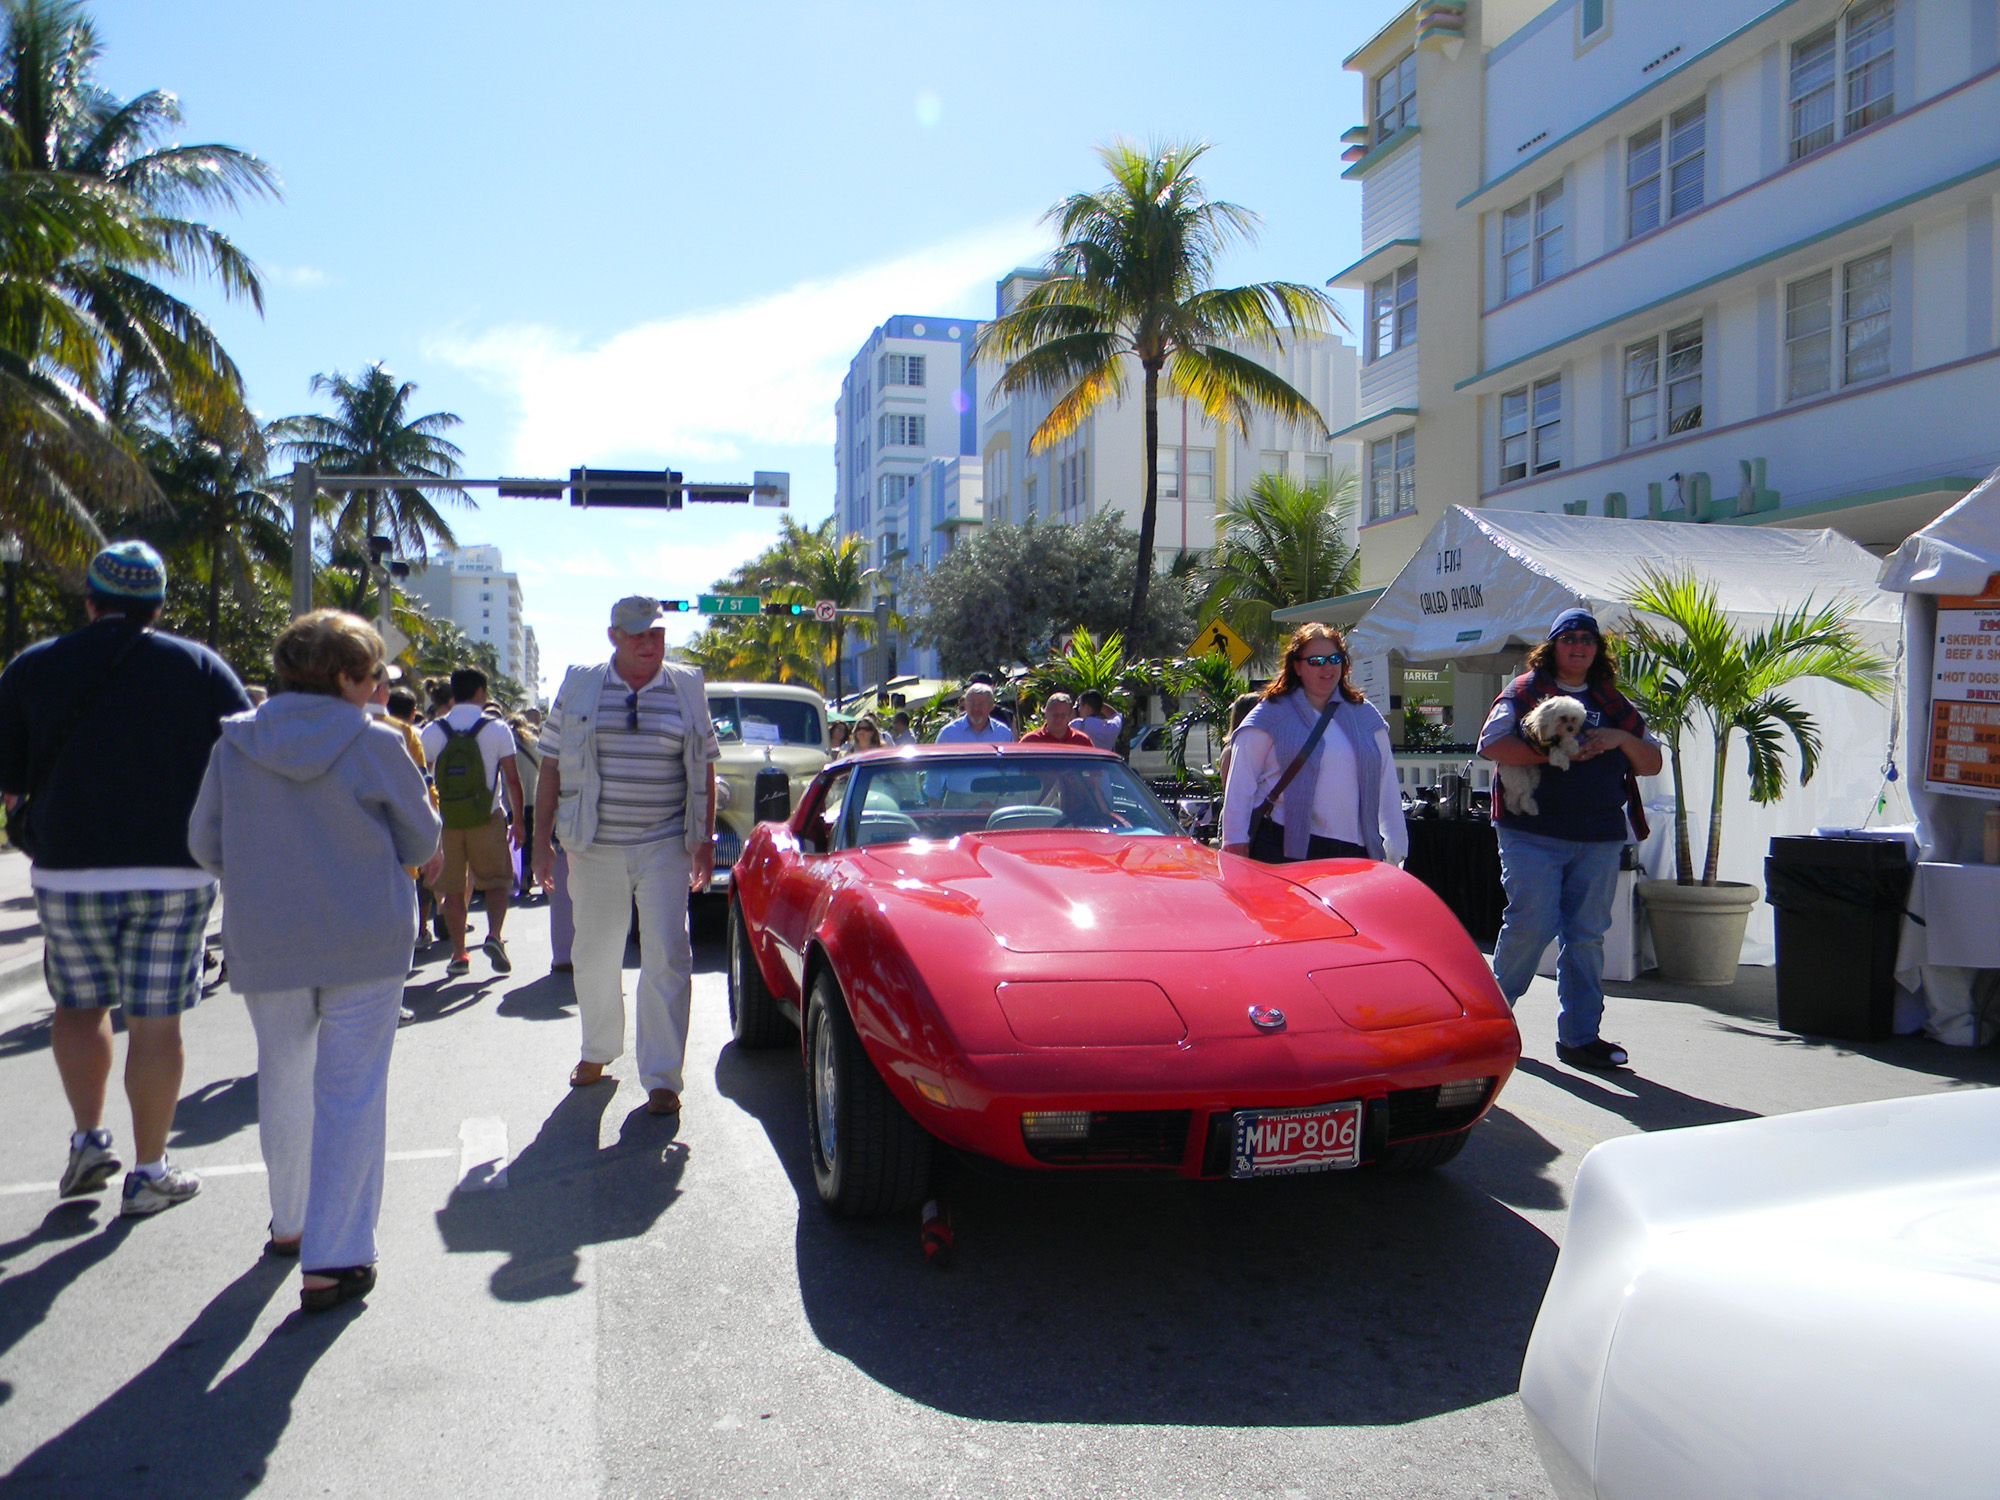 miami_south_beach_red_vintage_car_show_art_festival_annial_spring_march_2015